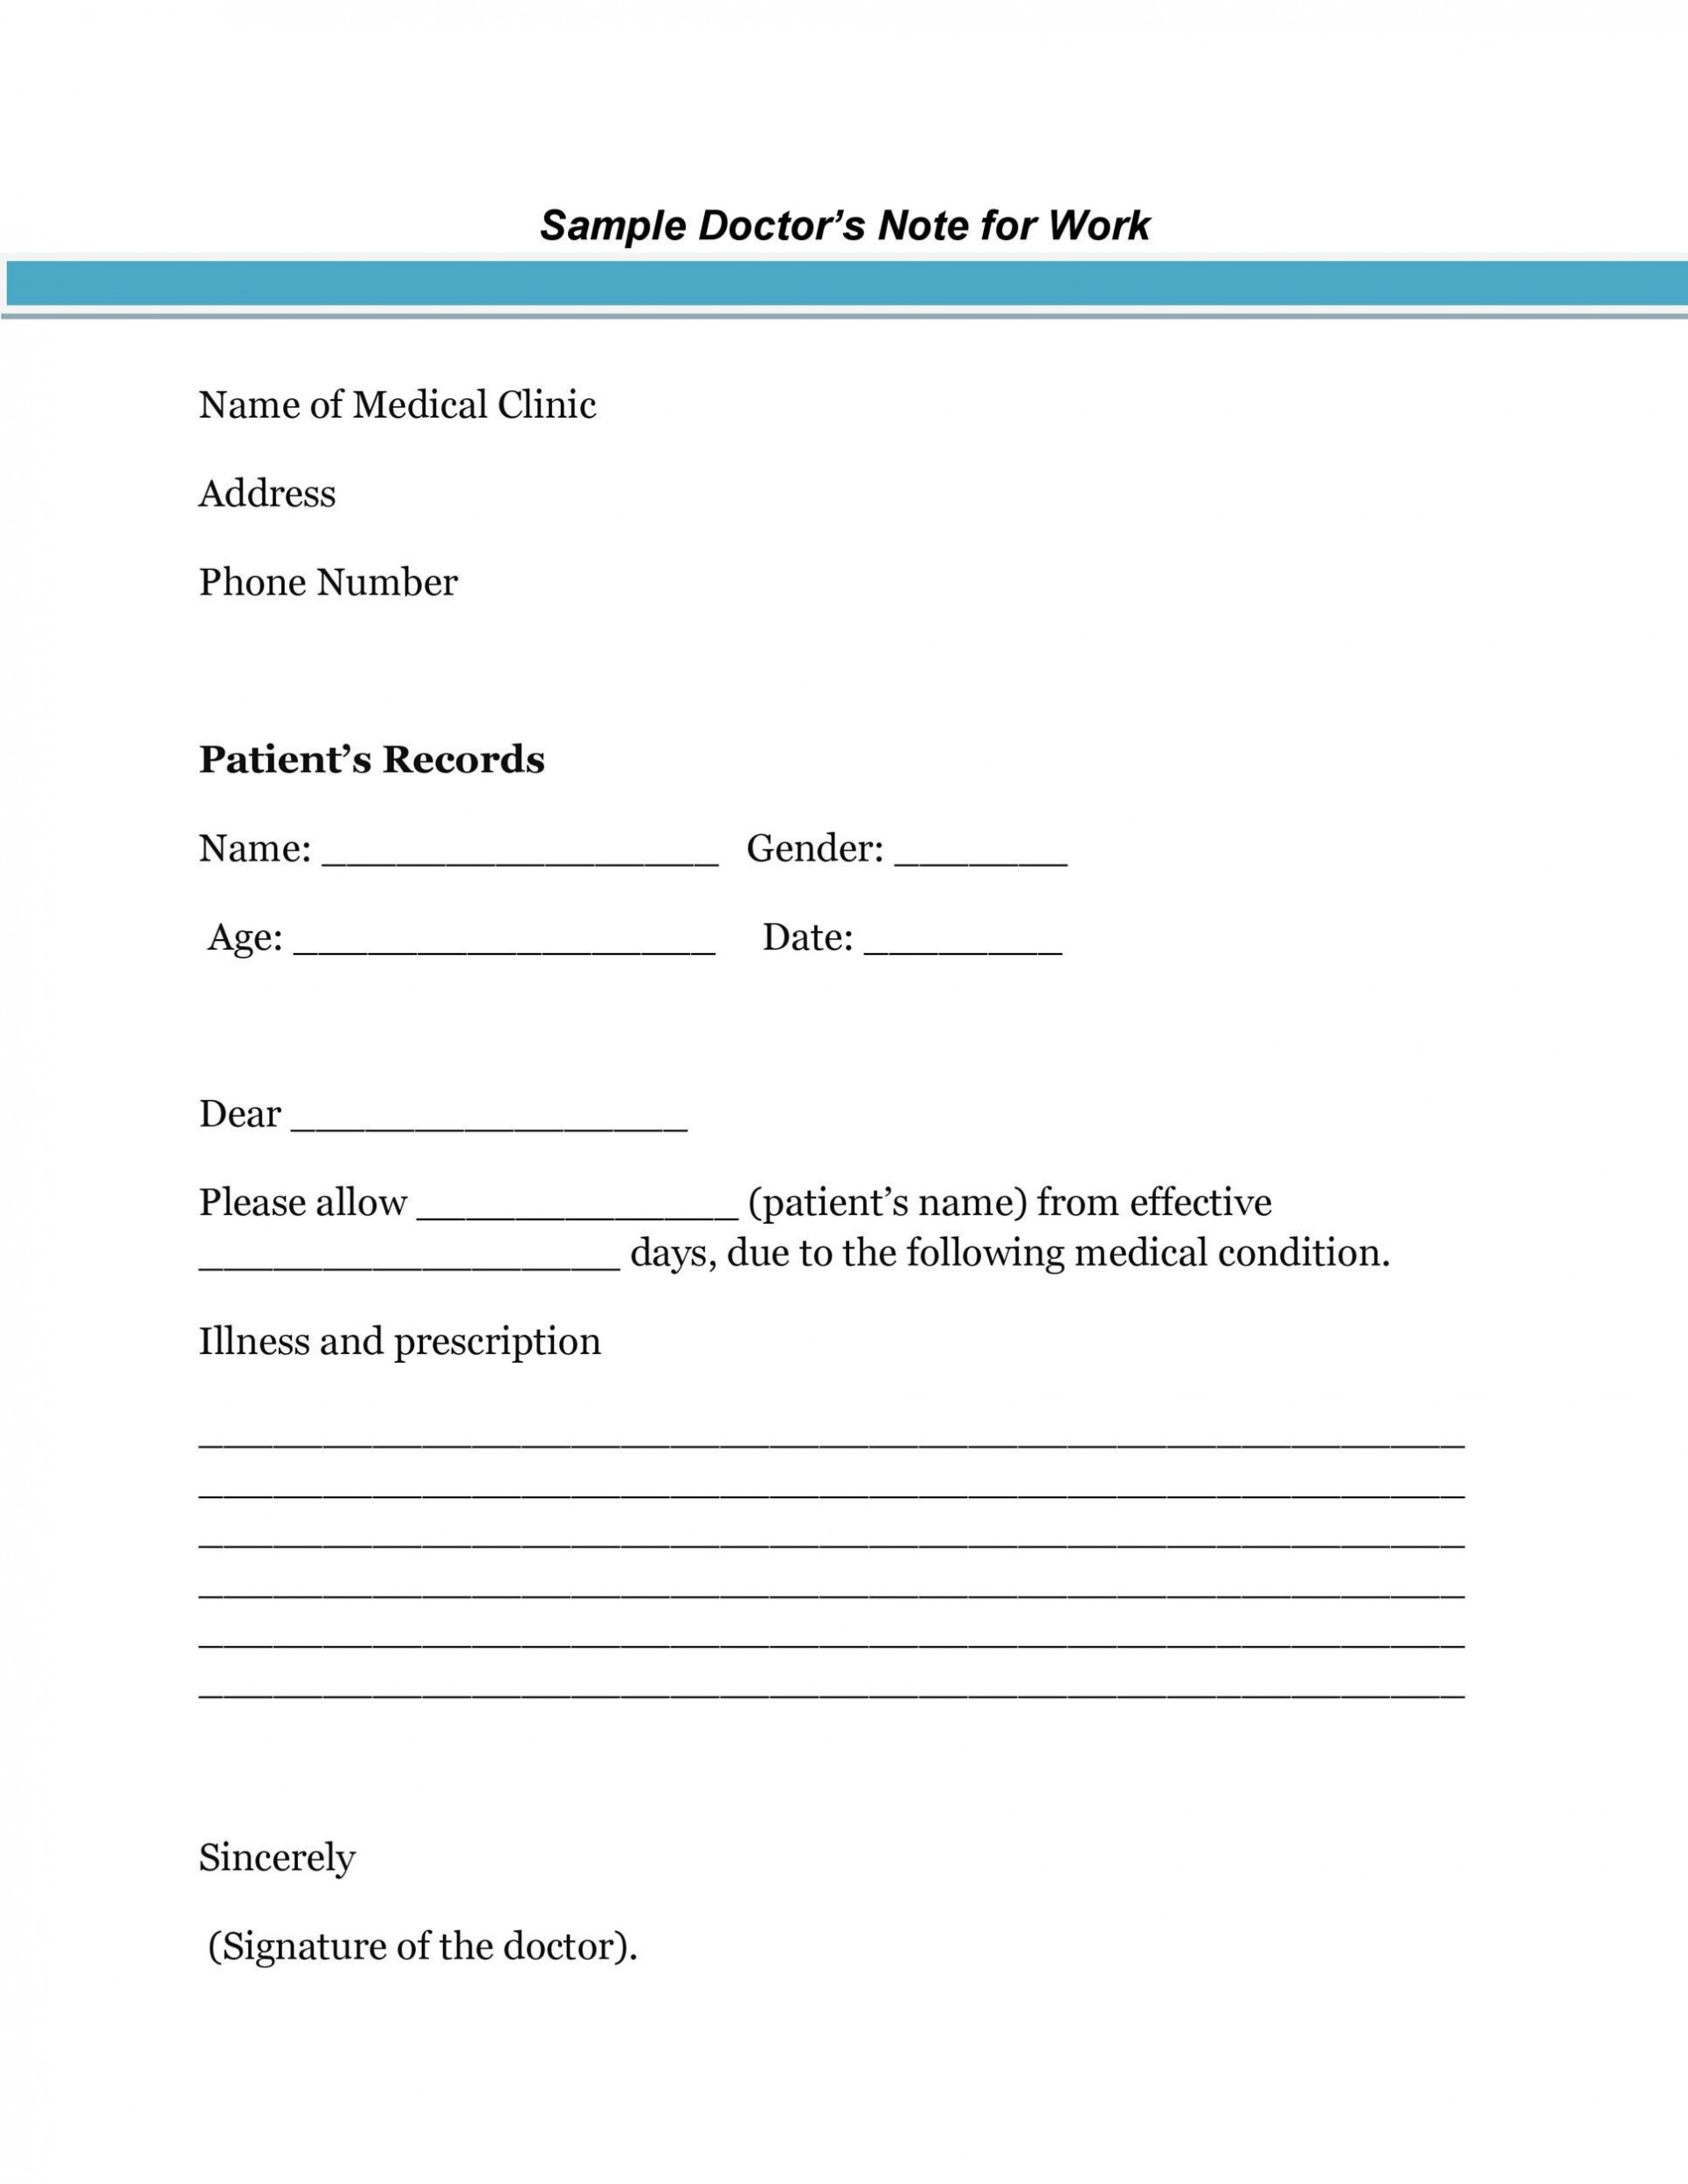 007 Fearsome Doctor Note Template Pdf Idea  Free Sample For Work1920